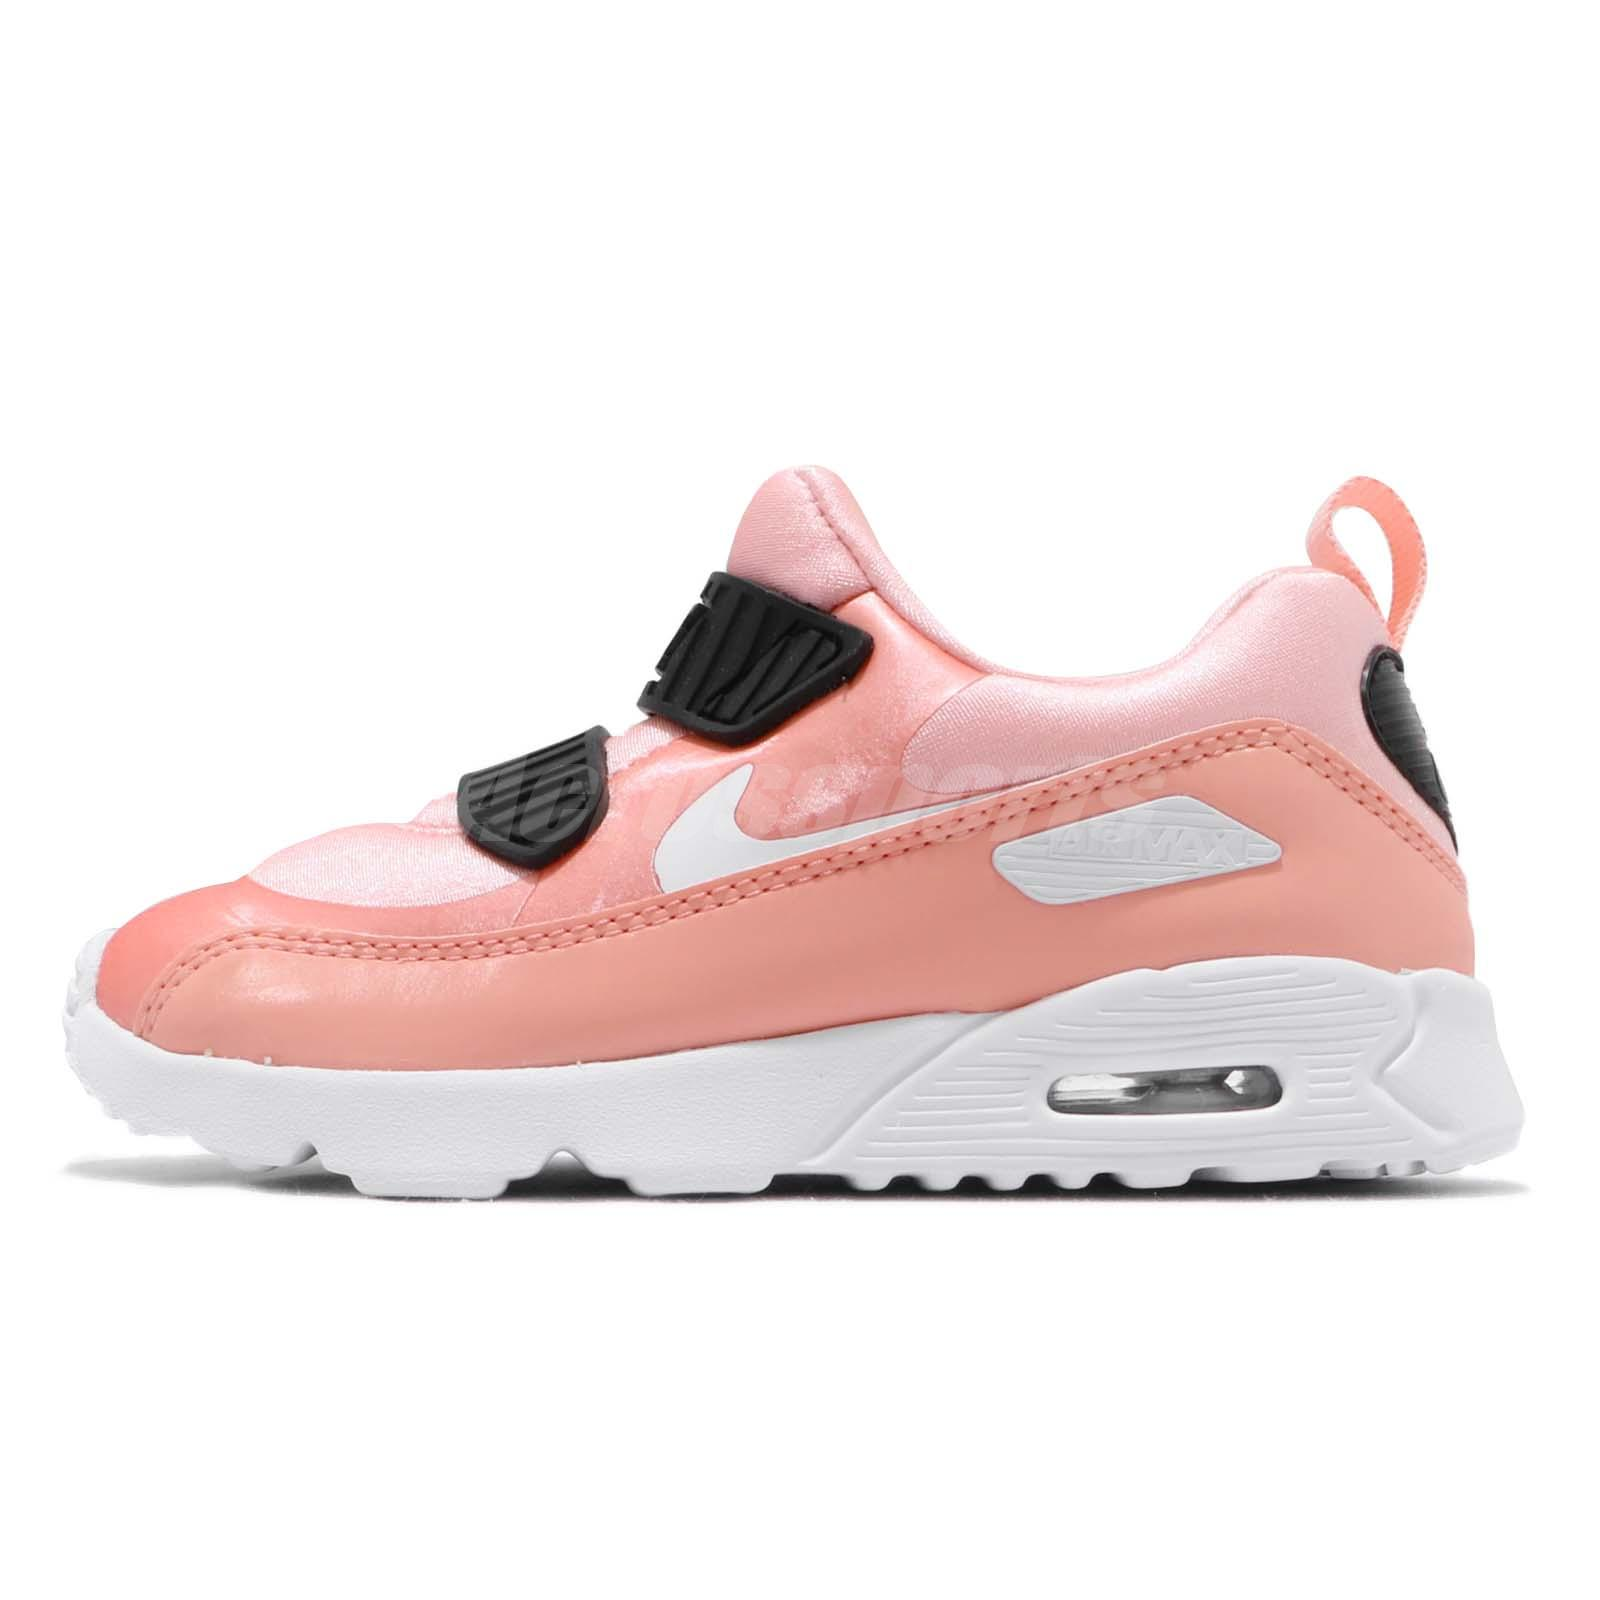 Details about Nike Air Max Tiny 90 VDAY TD Valentines Day Toddler Infant Shoes AV3195 600